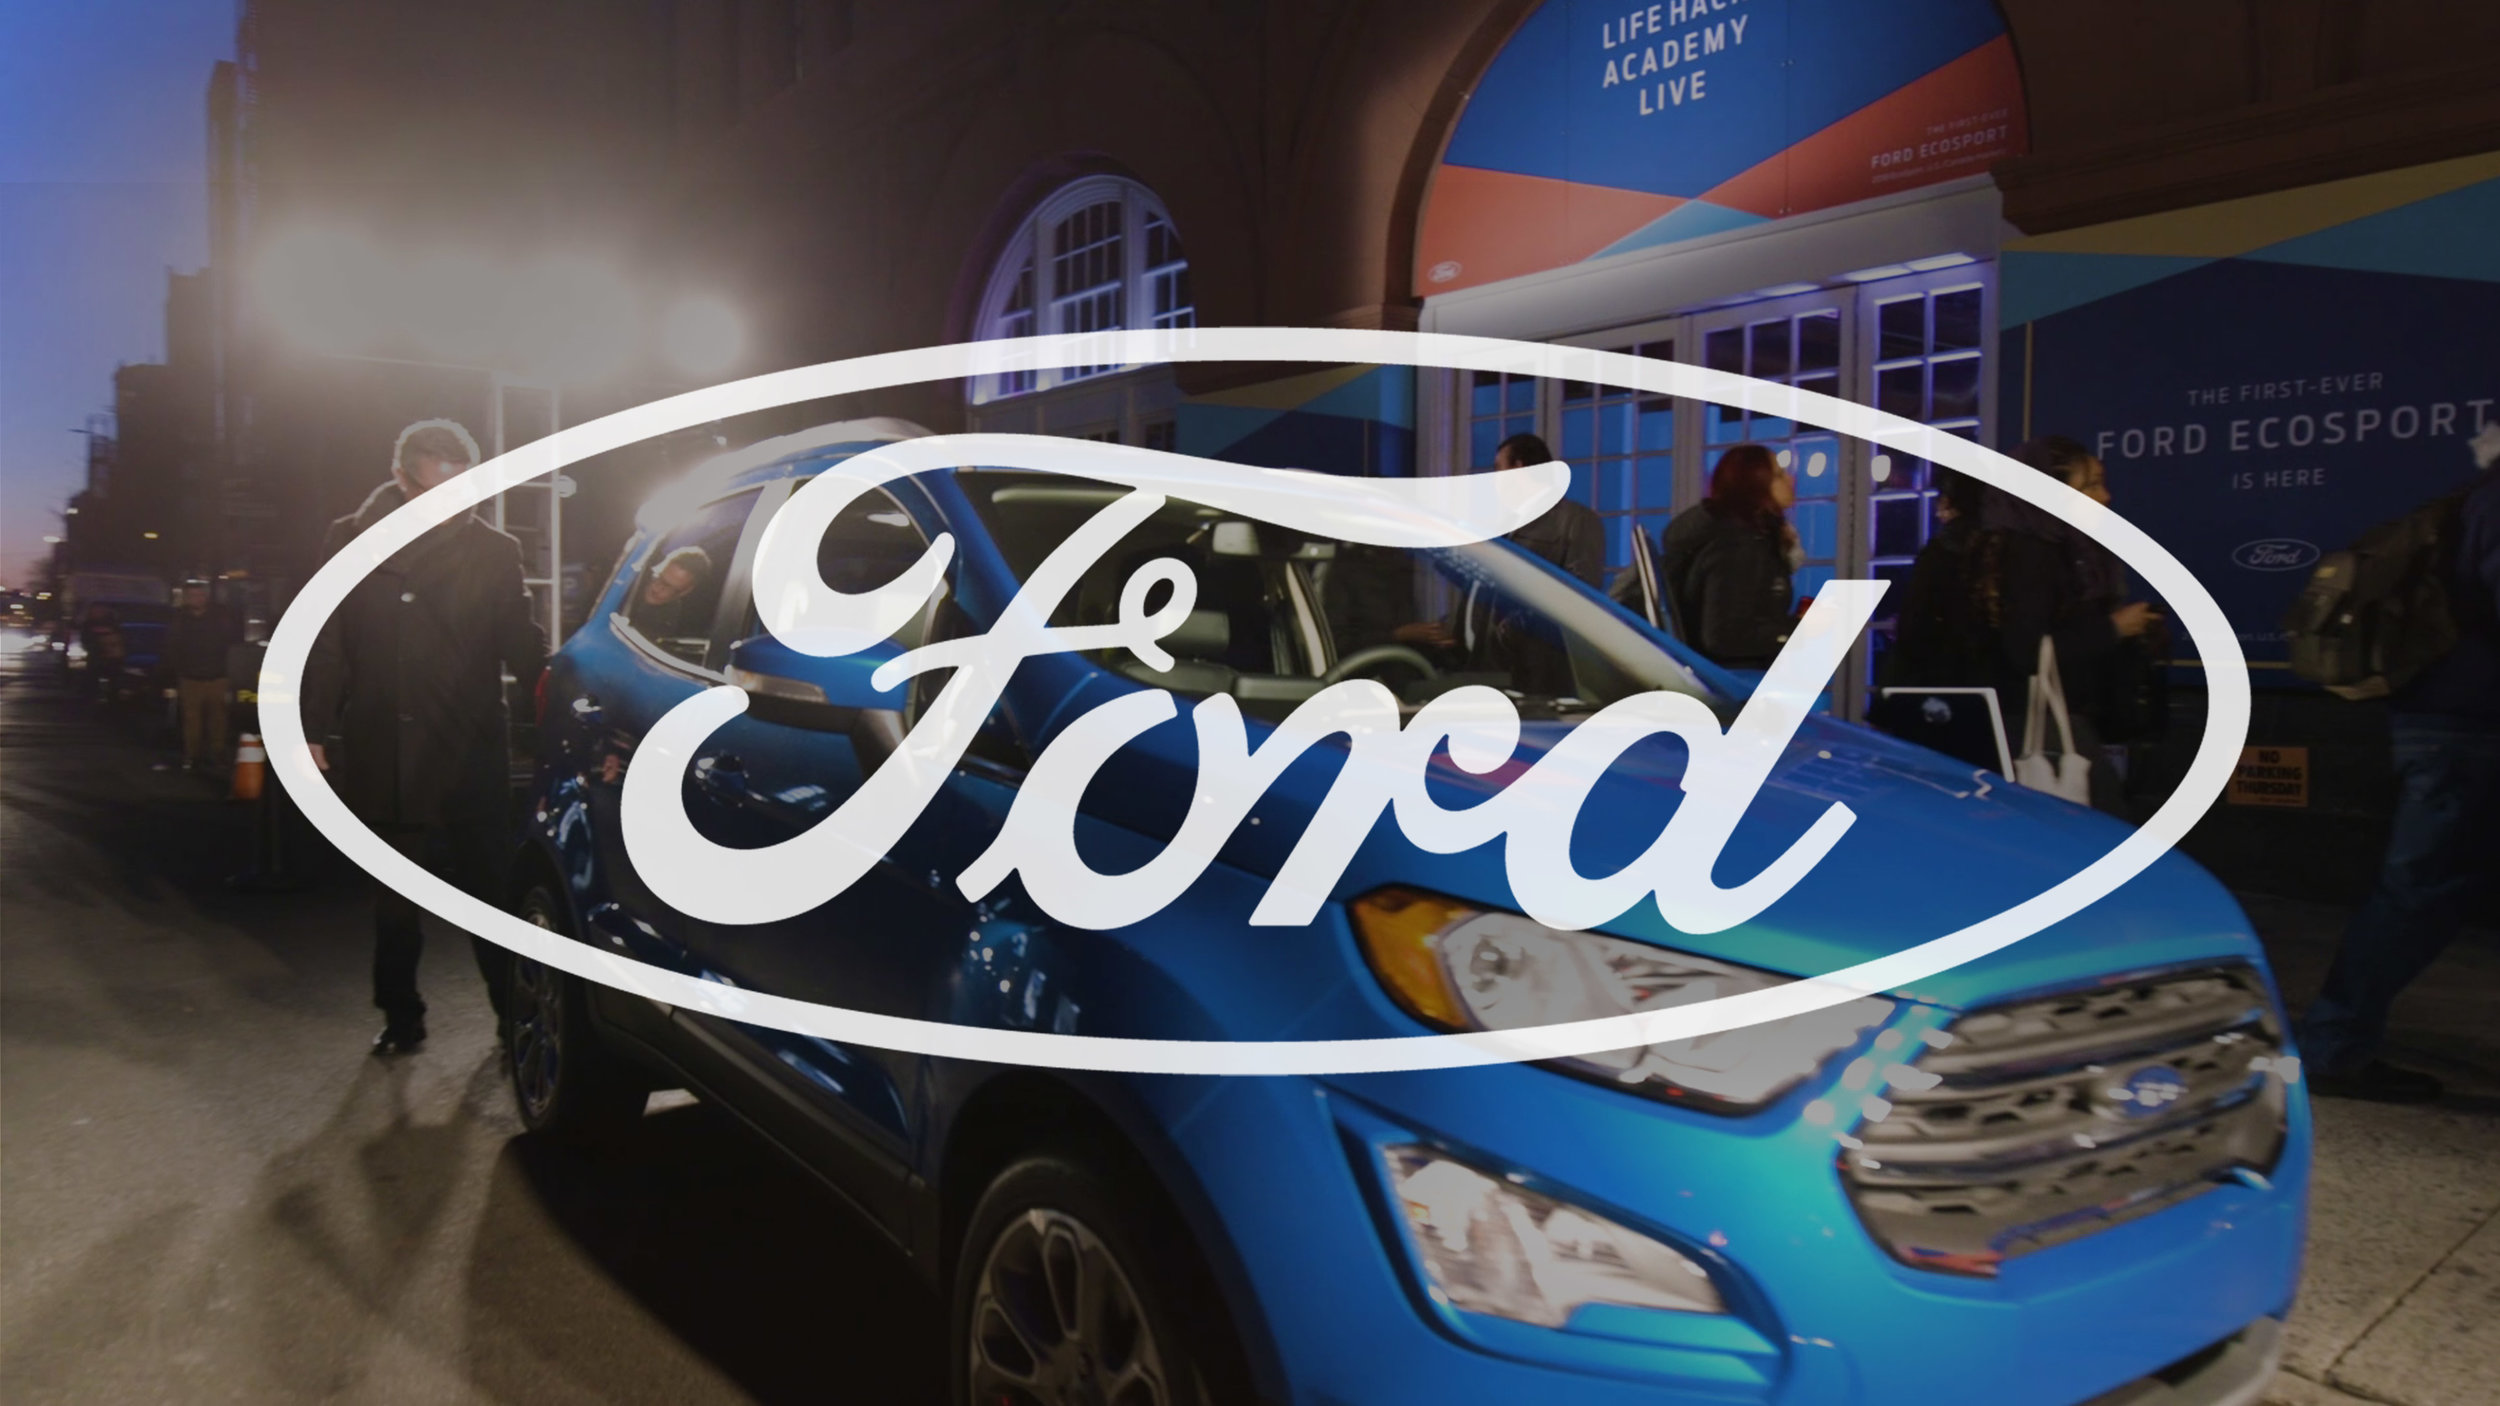 "Ford ""Life Hack Academy"" - Social Campaign"